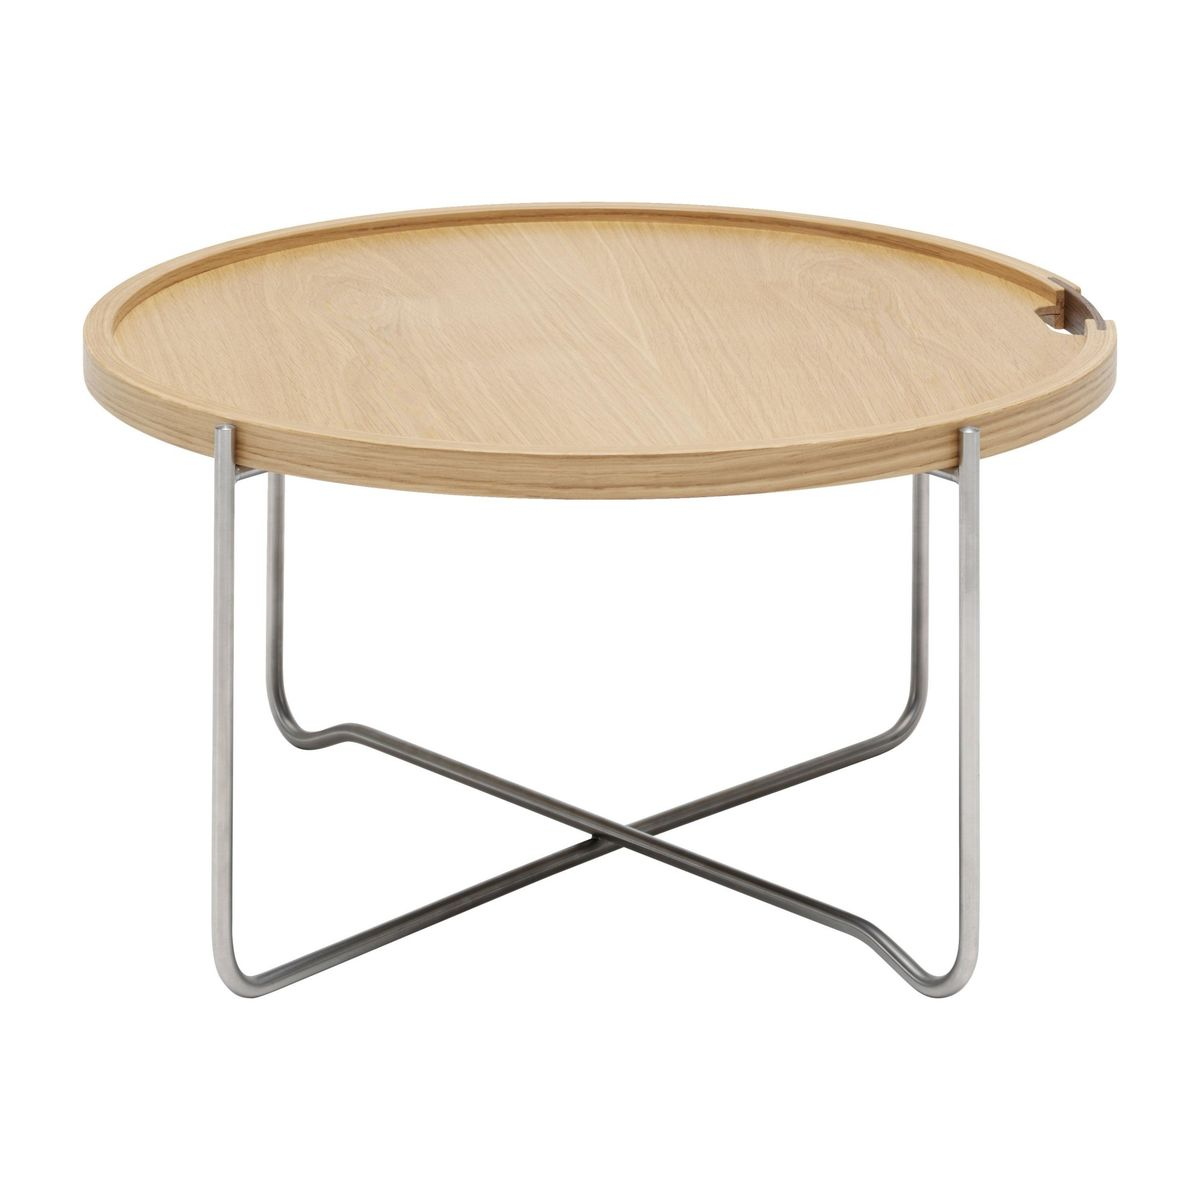 Tray Table Carl Hansen Ch417 Side Table Tray Table Carl Hansen